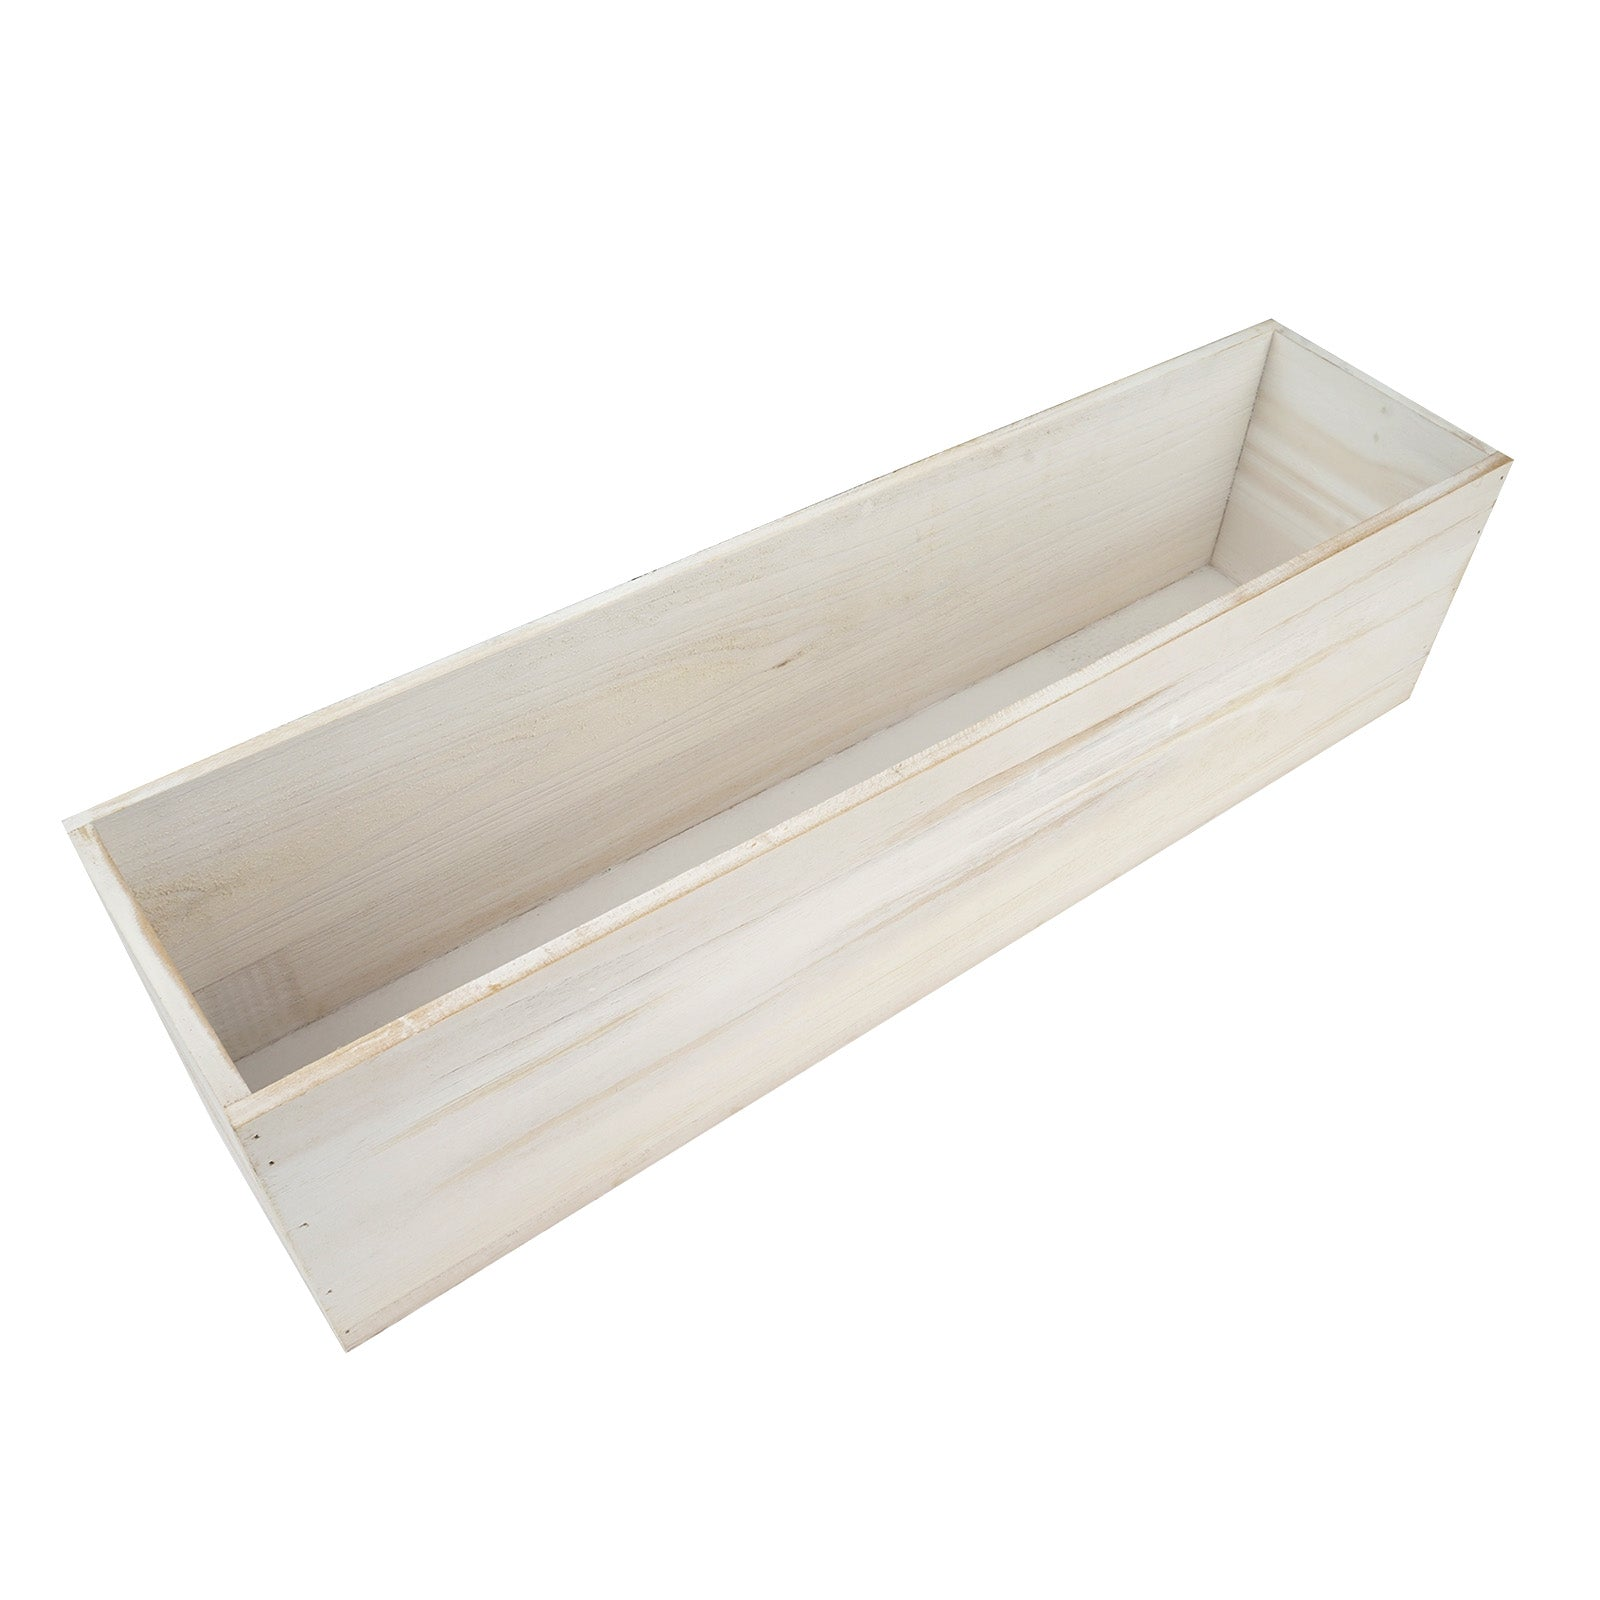 24x6 Rectangle Wood Boxes Diy Rustic Wooden Planter Boxes With